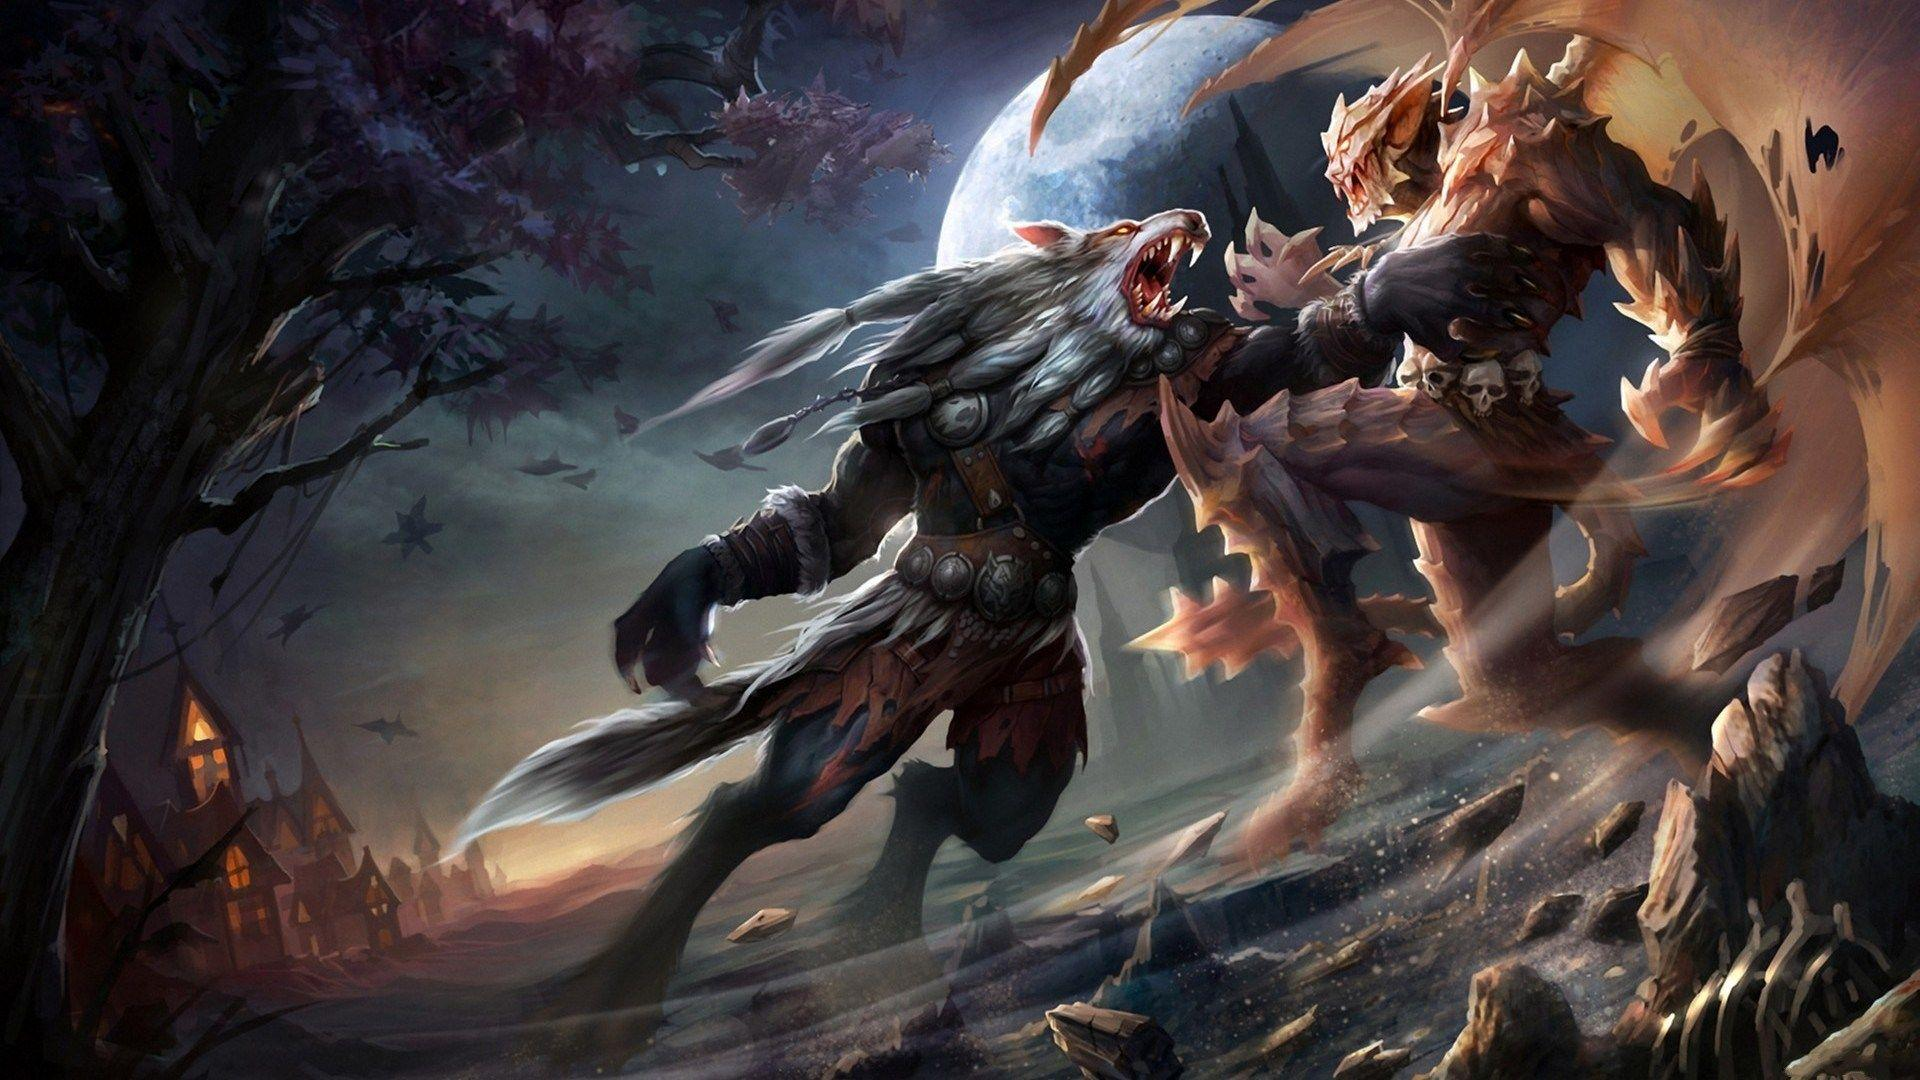 Werewolf Fight Wallpapers Wallpaper Cave